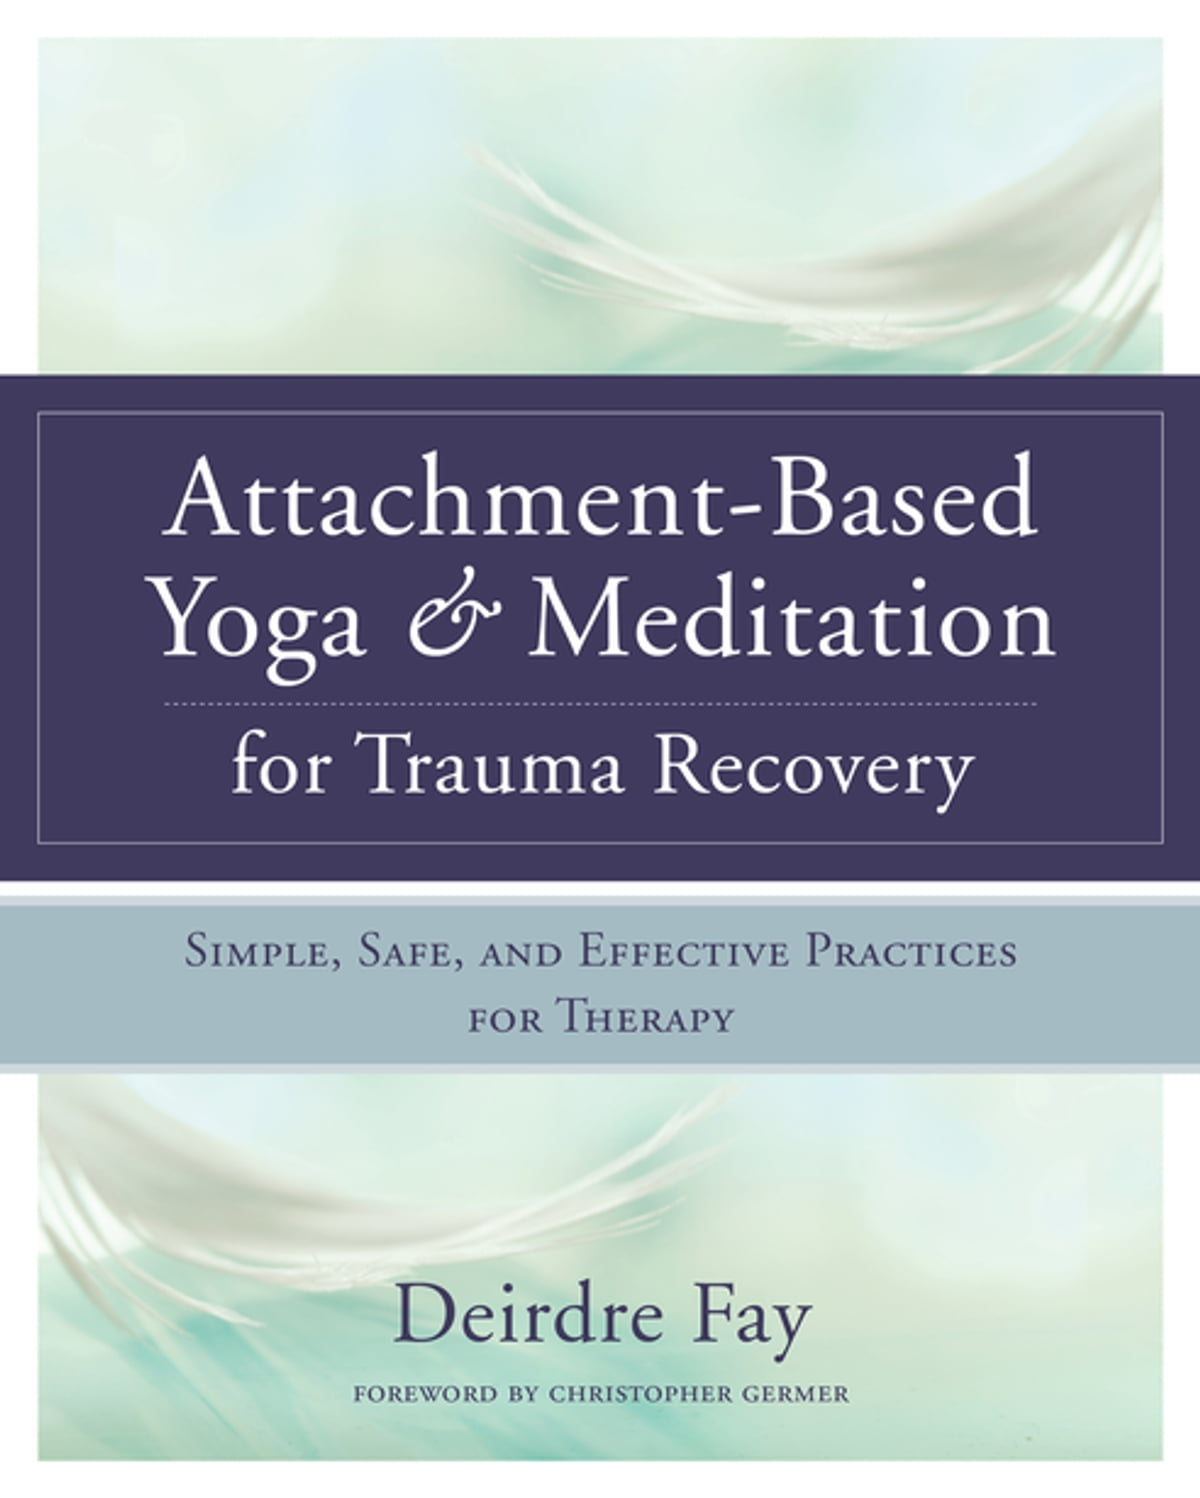 Attachment-Based Yoga & Meditation for Trauma Recovery: Simple, Safe, and  Effective Practices for Therapy ebook by Deirdre Fay - Rakuten Kobo